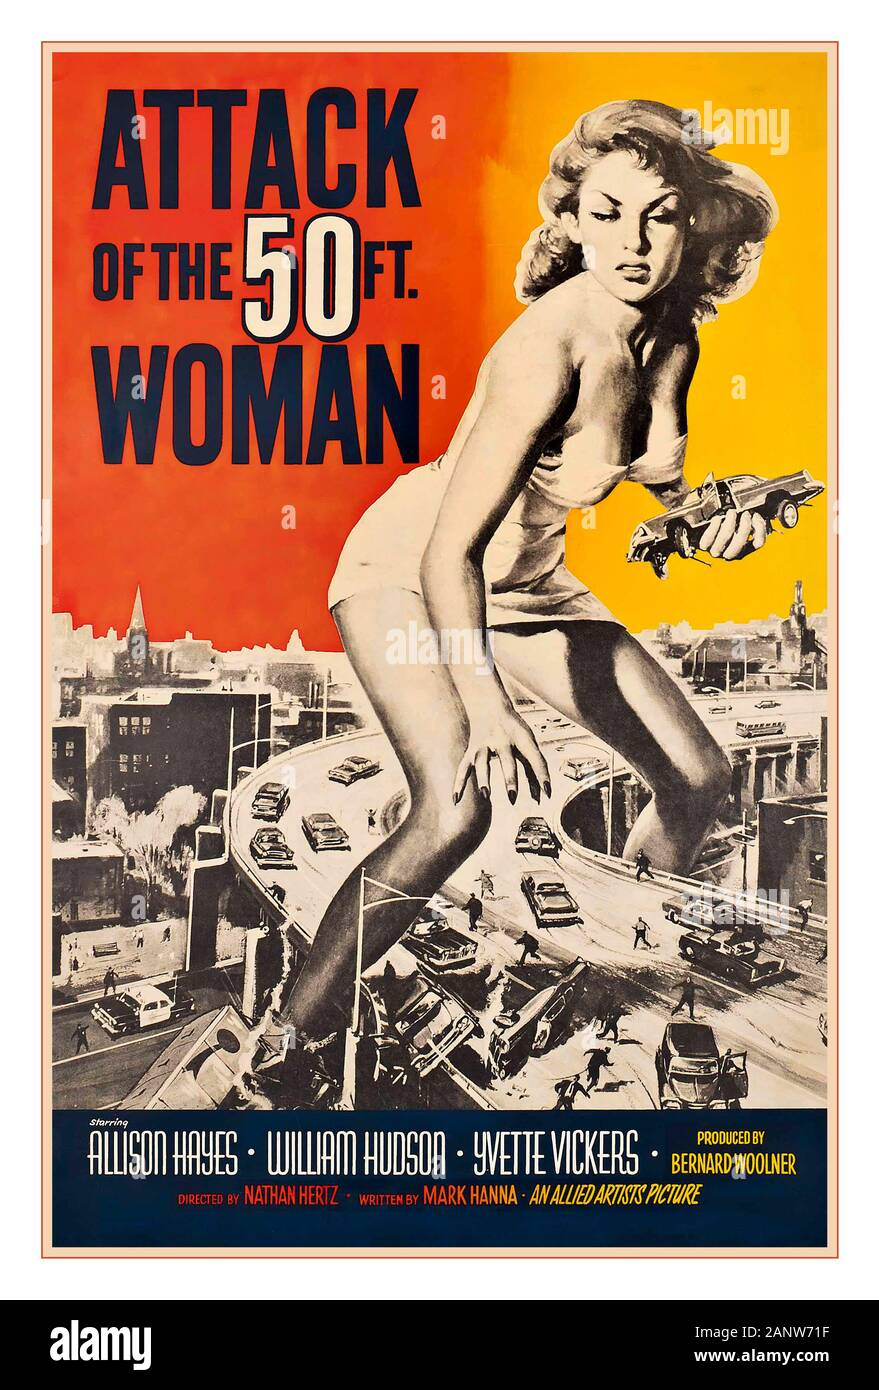 ATTACK of the 50ft WOMAN Vintage 1950's movie film cinema poster  'ATTACK OF THE 50FT. WOMAN'  1958 ‧ Cult film/Horror ‧1958, Allied Artists, U.S by Reynold Brown cult horror film  featuring Allison Hayes and William Hudson Yvette Vickers Directed by Nathan Juran Stock Photo